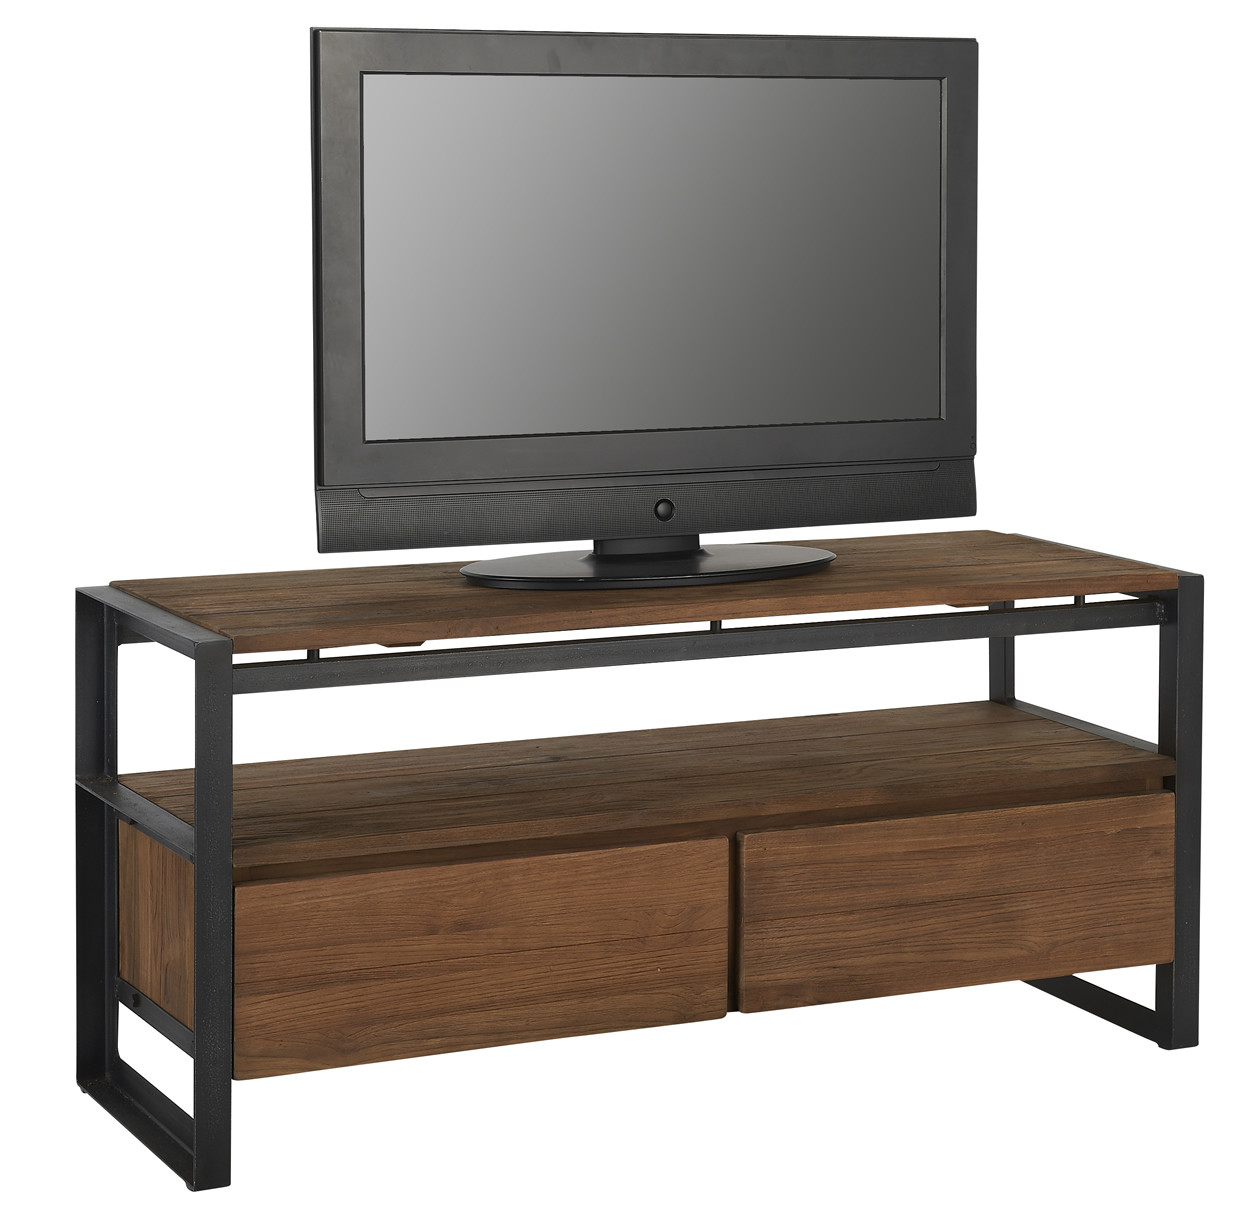 laag tv meubel wit kopen online internetwinkel. Black Bedroom Furniture Sets. Home Design Ideas